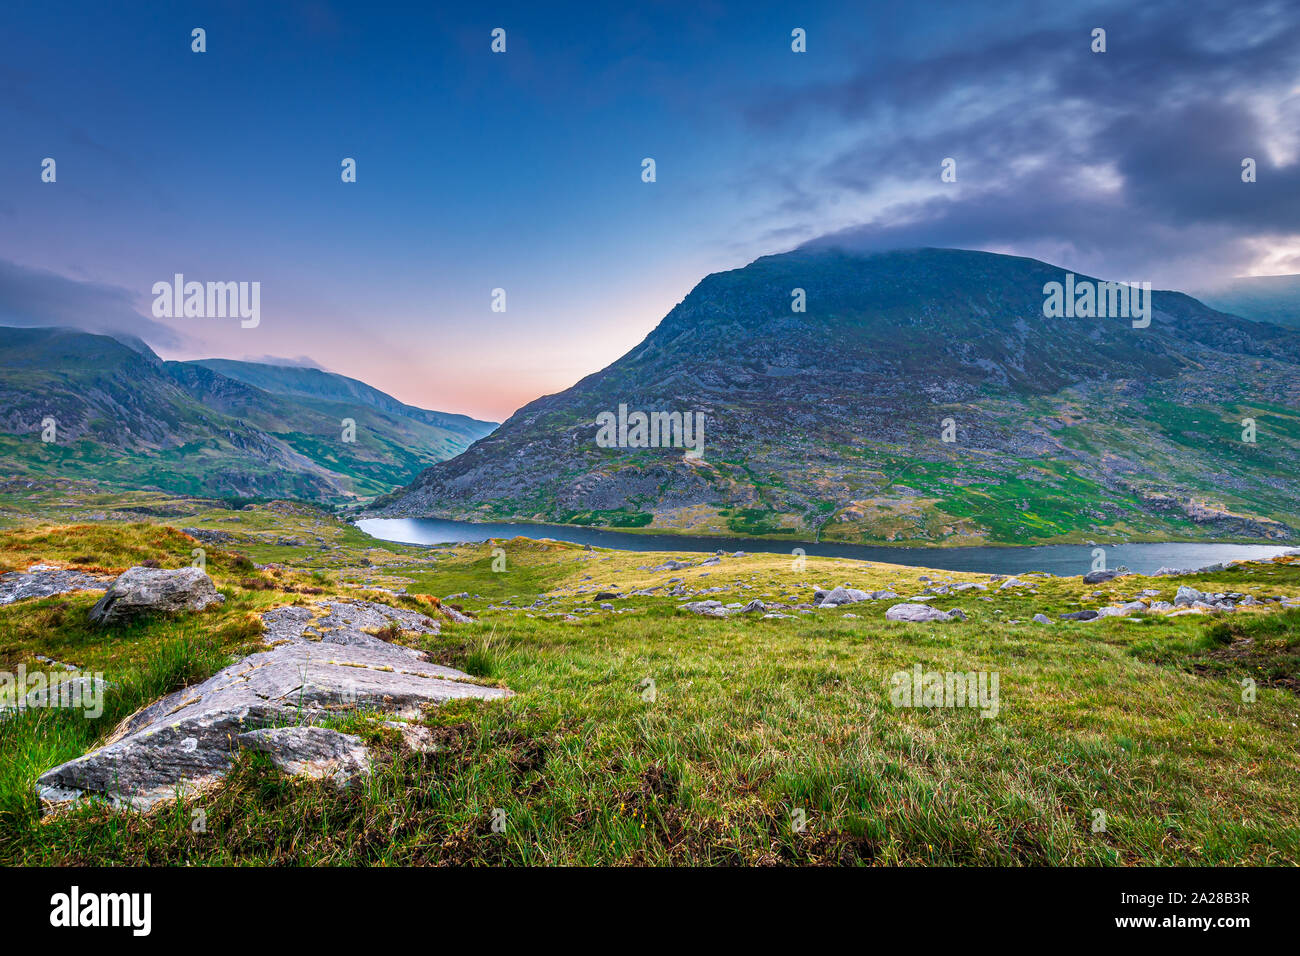 Snowdonia National Park In North Wales with the mountains in the background make a stunning landscape Stock Photo